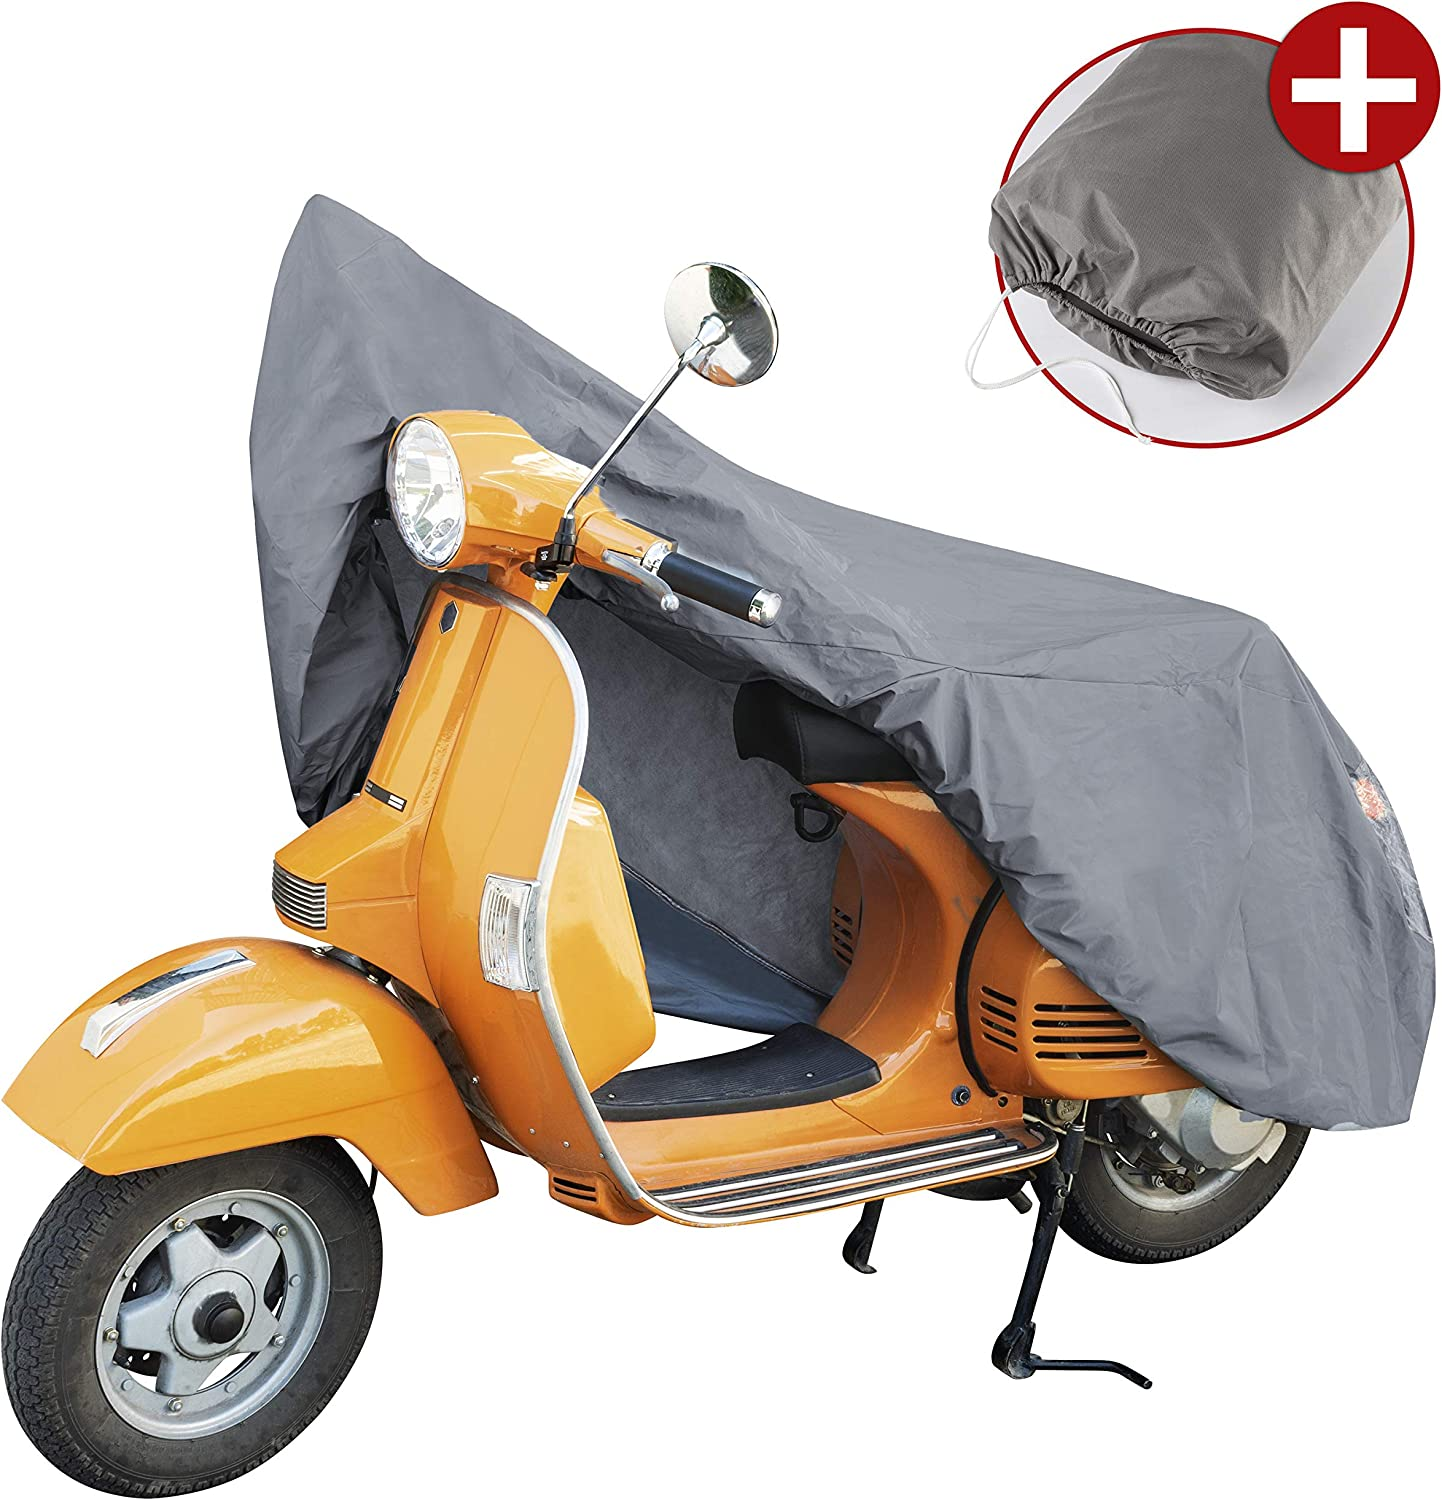 Walser Motorbike Cover Pvc In Grey Motorcycle Cover S Grey Auto